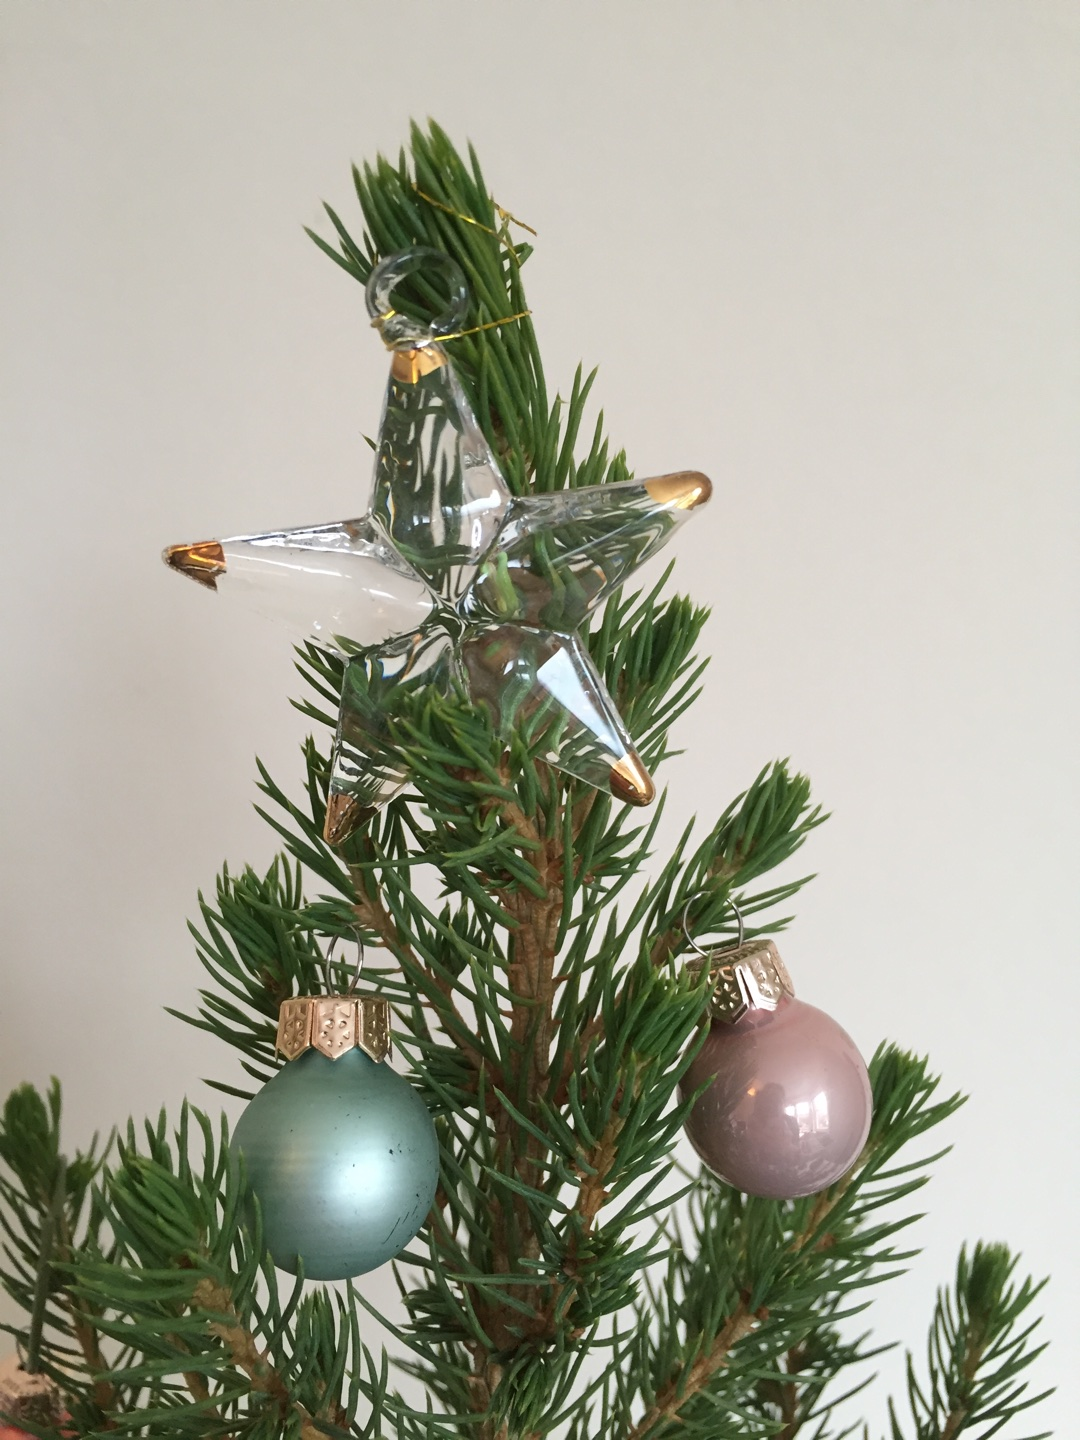 Star 1 Bloom and Wild Christmas Tree